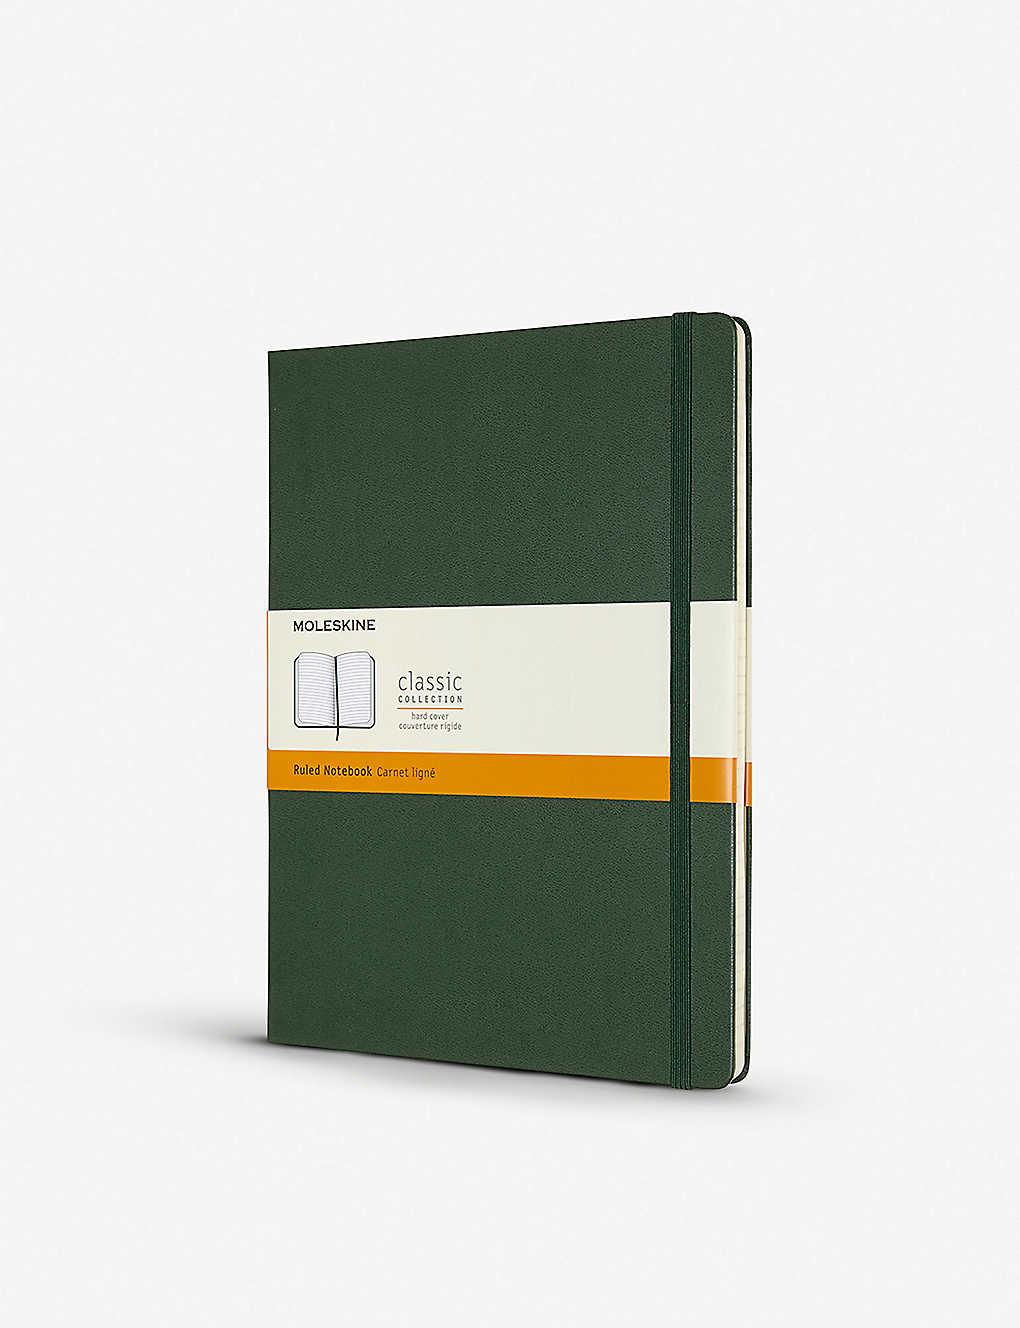 MOLESKINE: Classic collection ruled hardcover notebook 25cm x 19cm